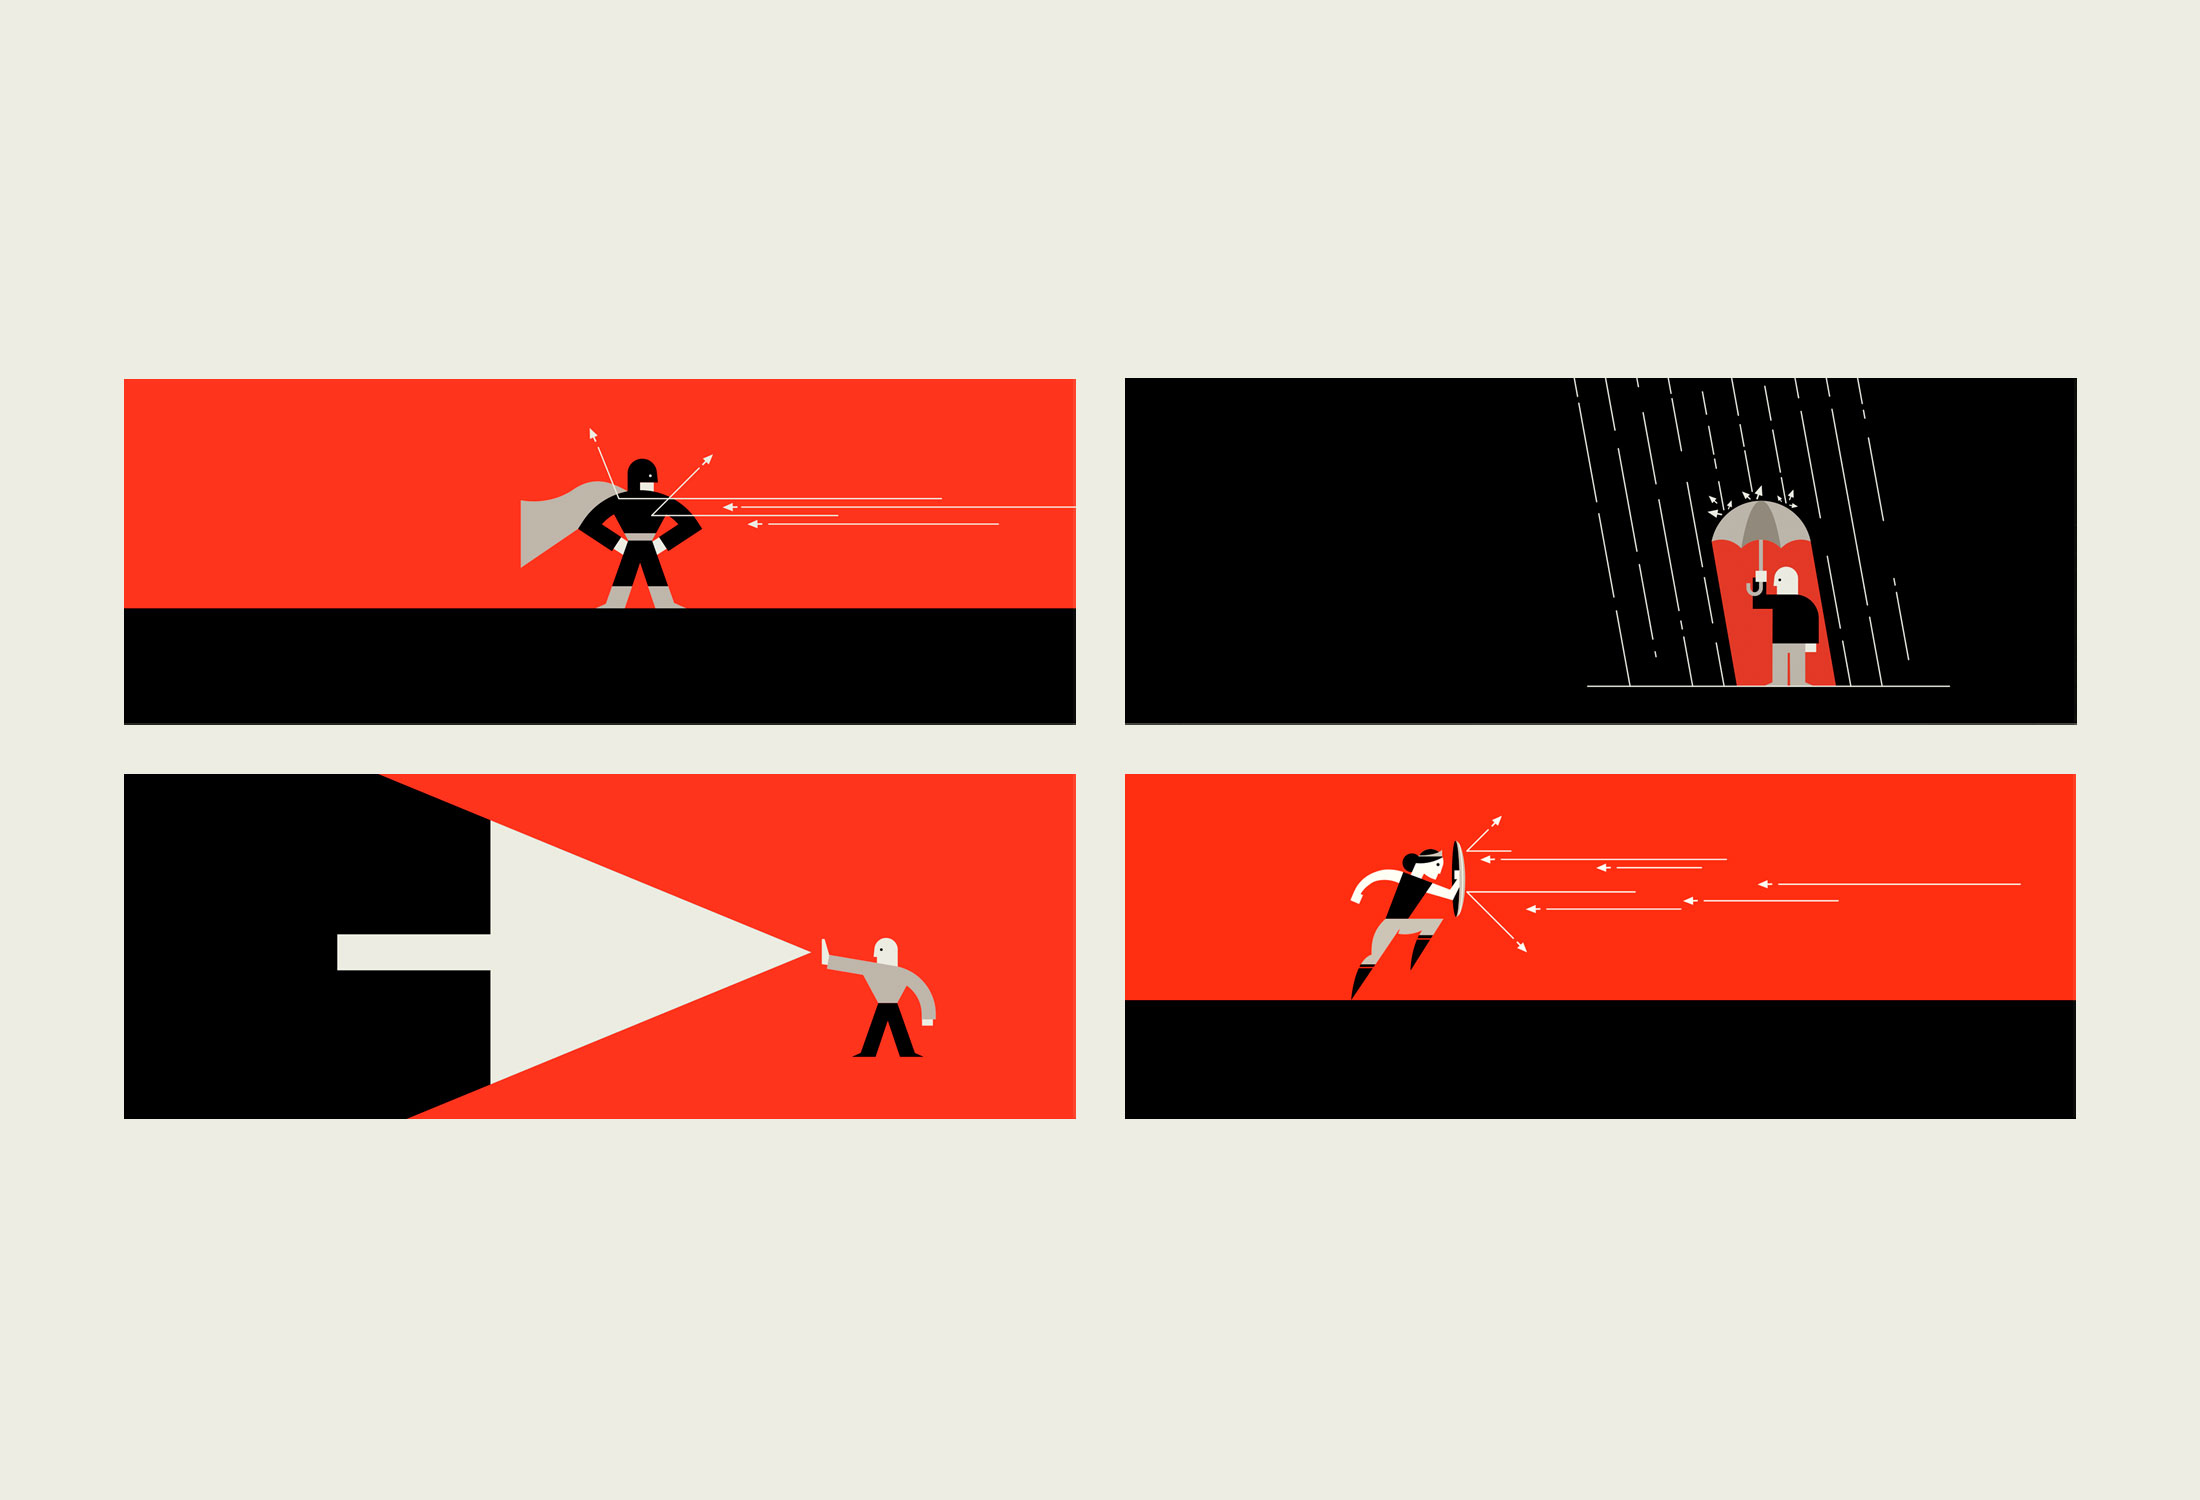 Illustration series for Deflect by Parko Polo